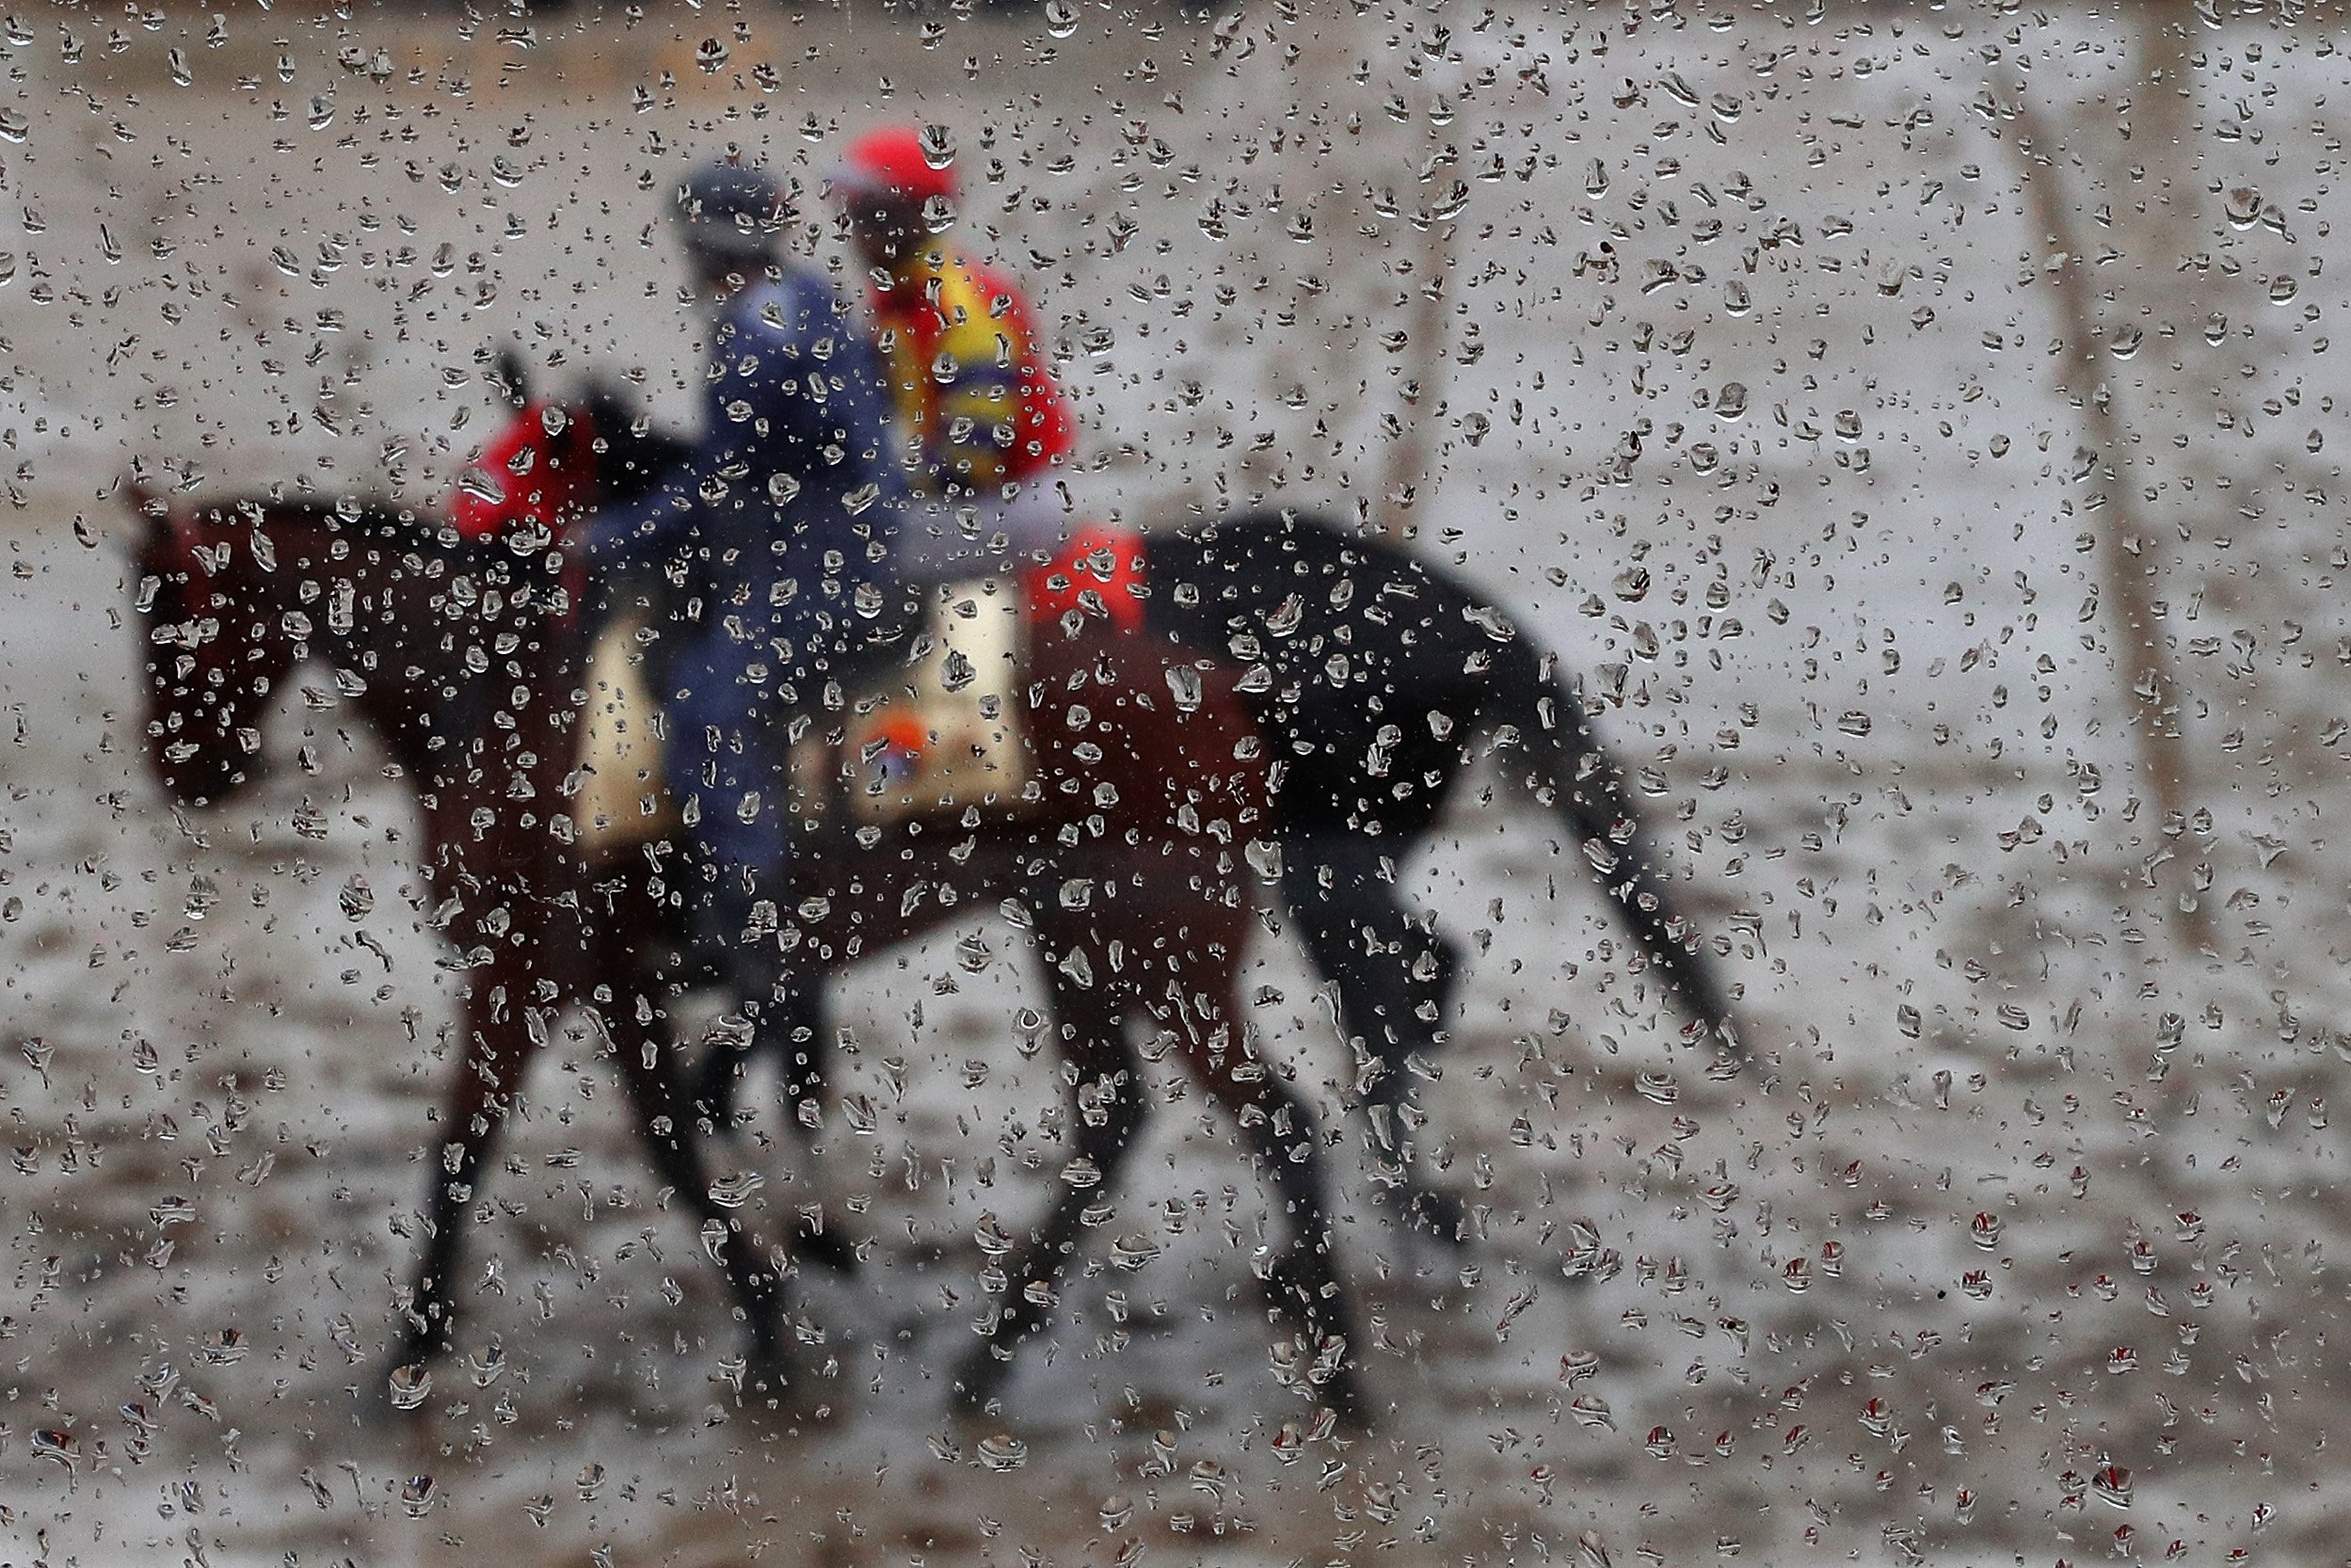 Horses are paraded before a race prior to the 141st Preakness Stakes horse race at Pimlico Race Course in Baltimore, Md., on May 21, 2016.